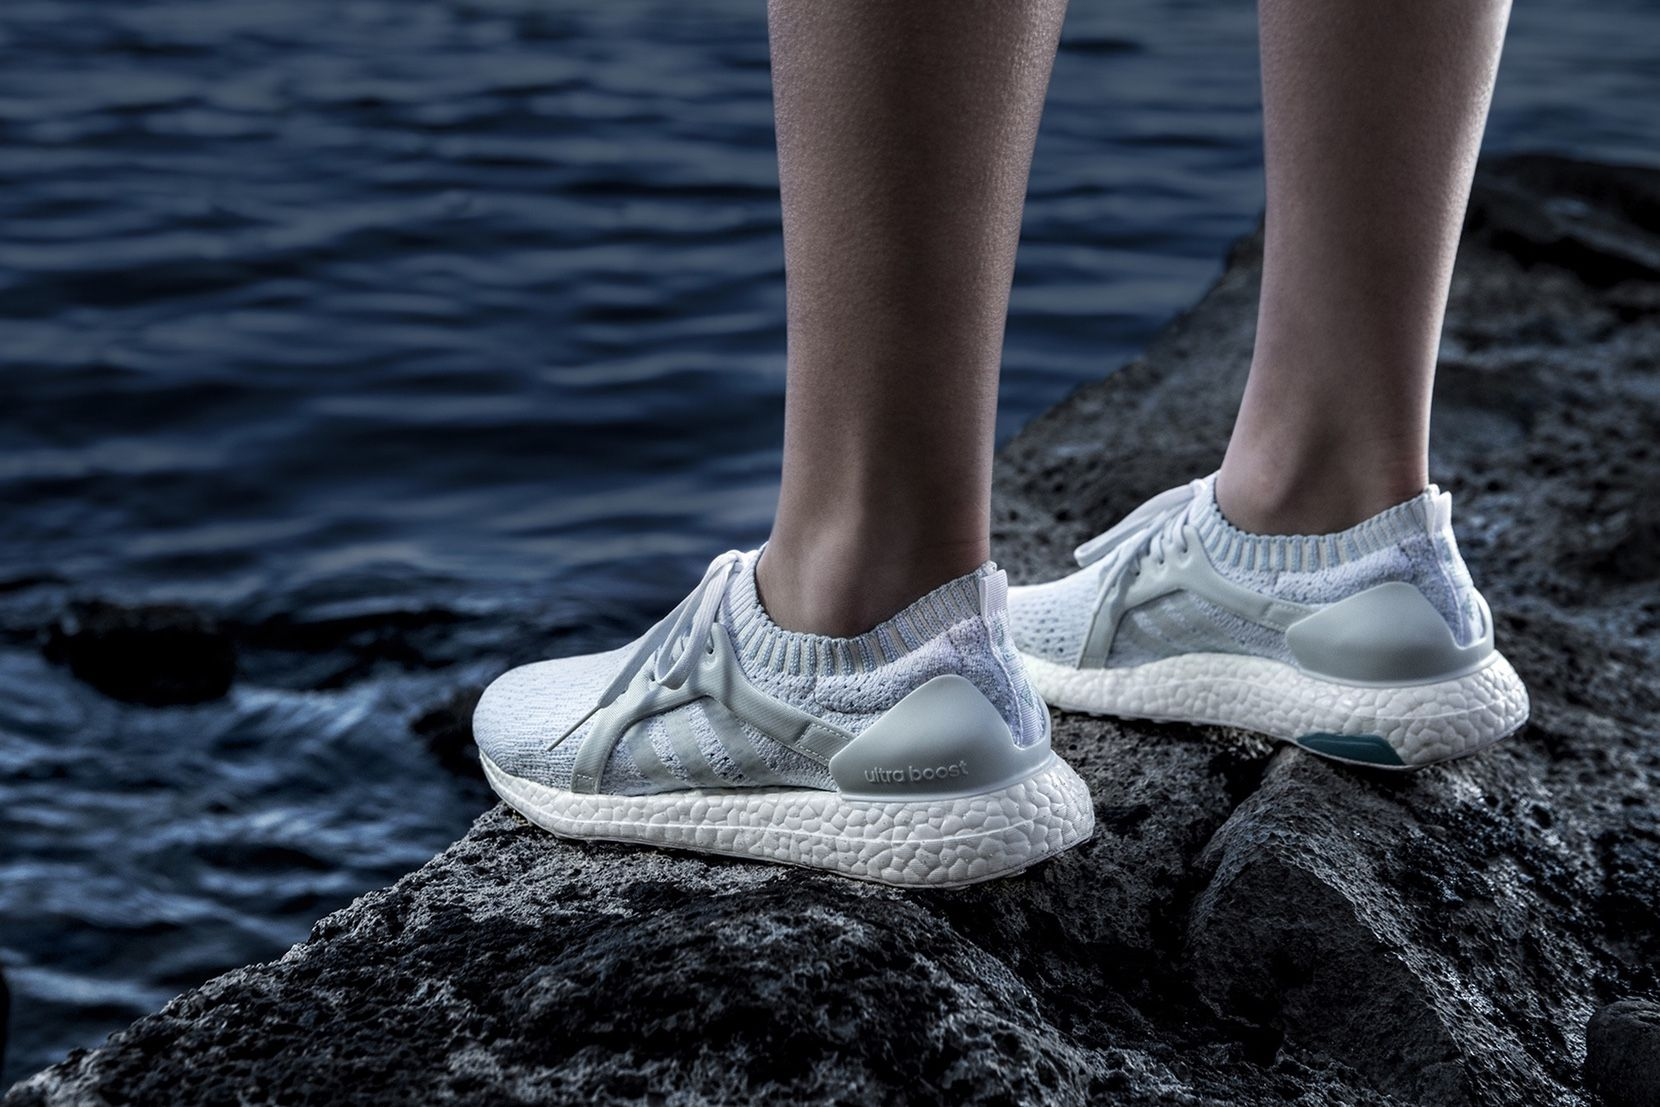 eca4d37a95a04 The New Parley x adidas UltraBOOSTs Raise Awareness About Coral Bleaching